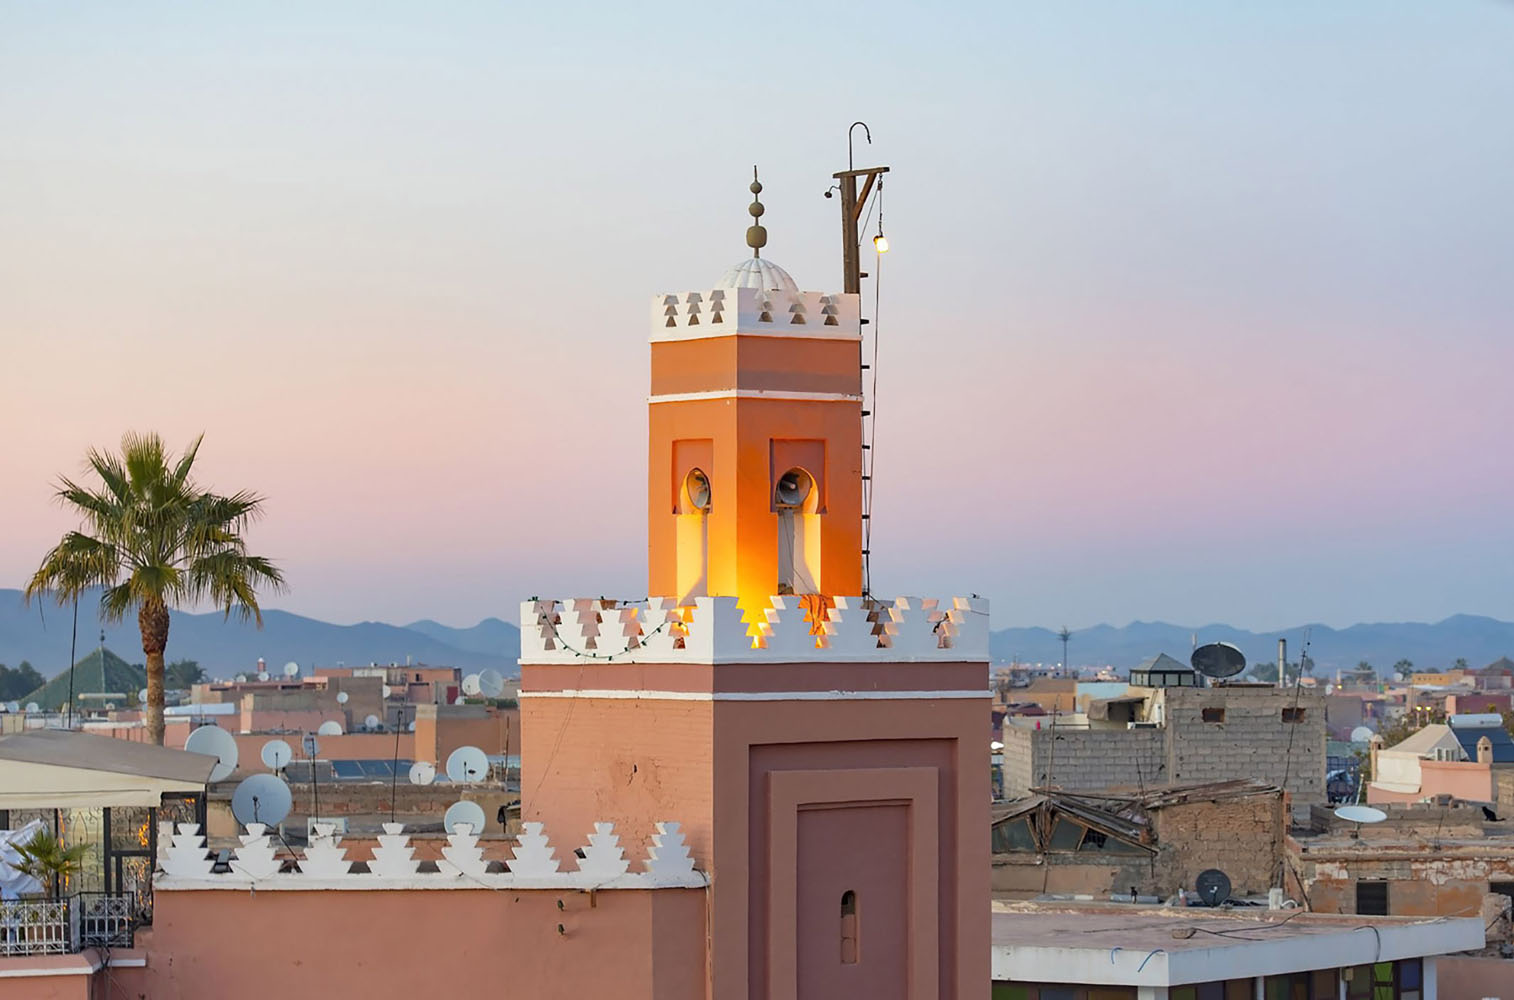 Marrakesh with the old part of town Medina and minaret